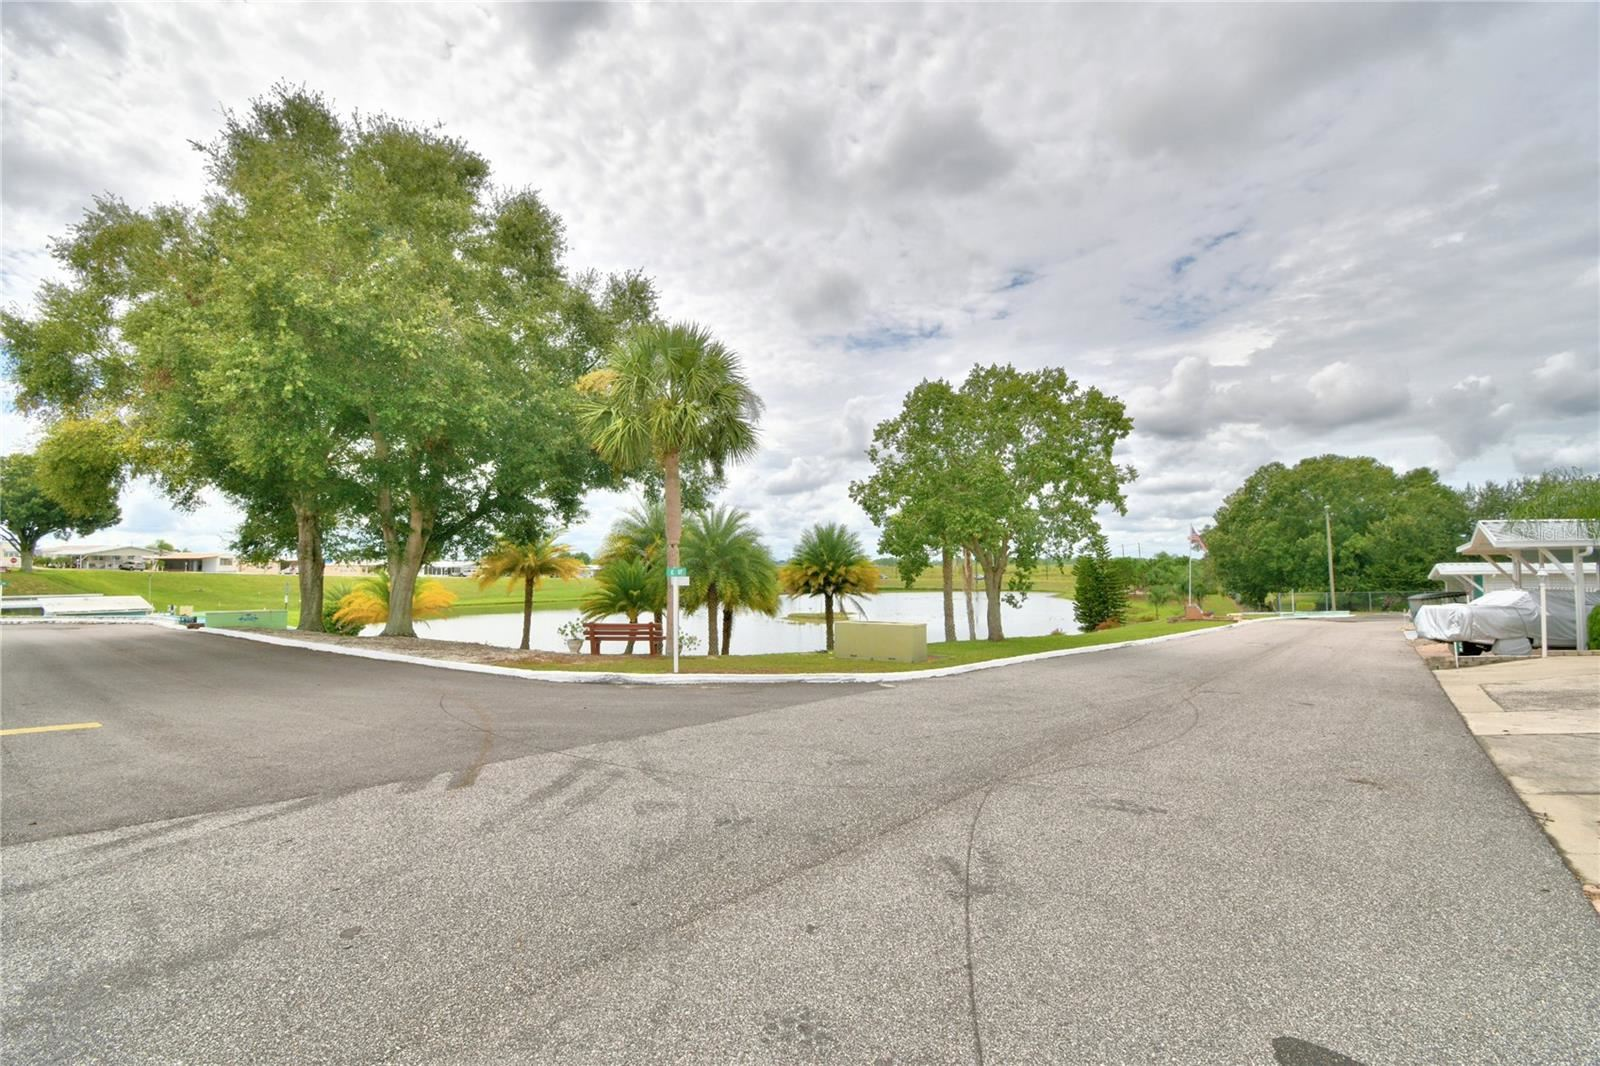 Photo of 251 PATTERSON ROAD #C8, HAINES CITY, FL 33844 (MLS # P4917493)